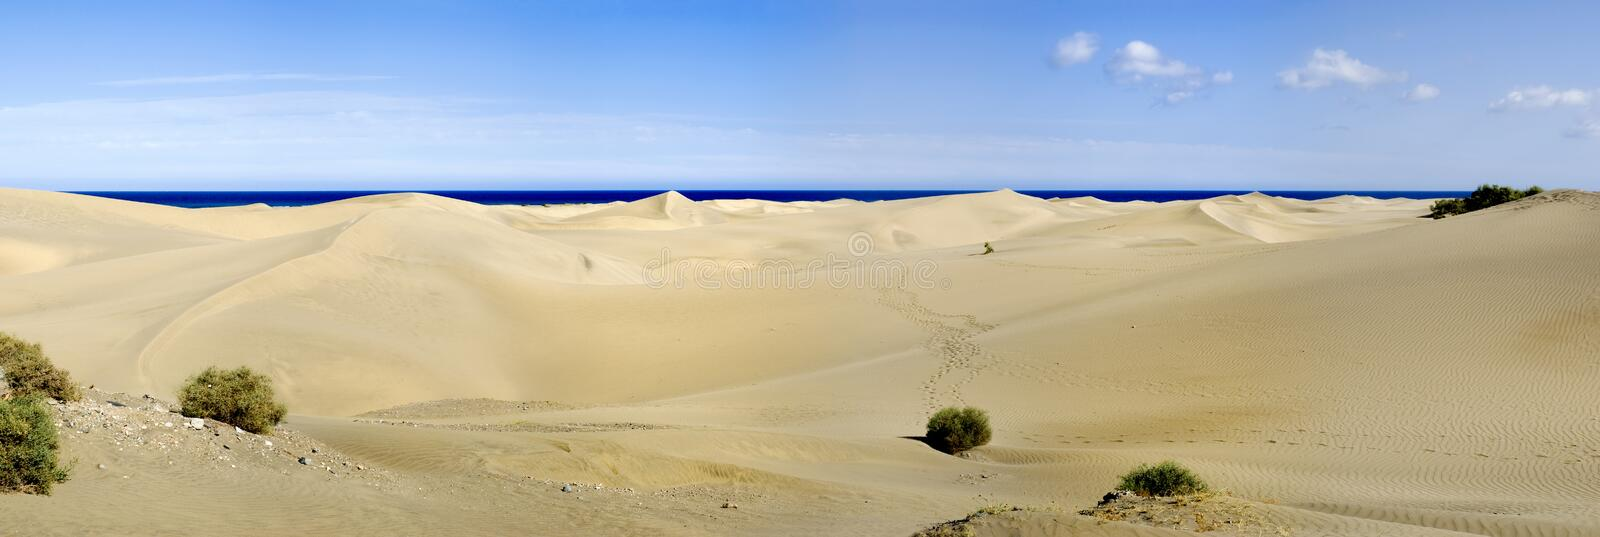 Maspalomas do panorama foto de stock royalty free